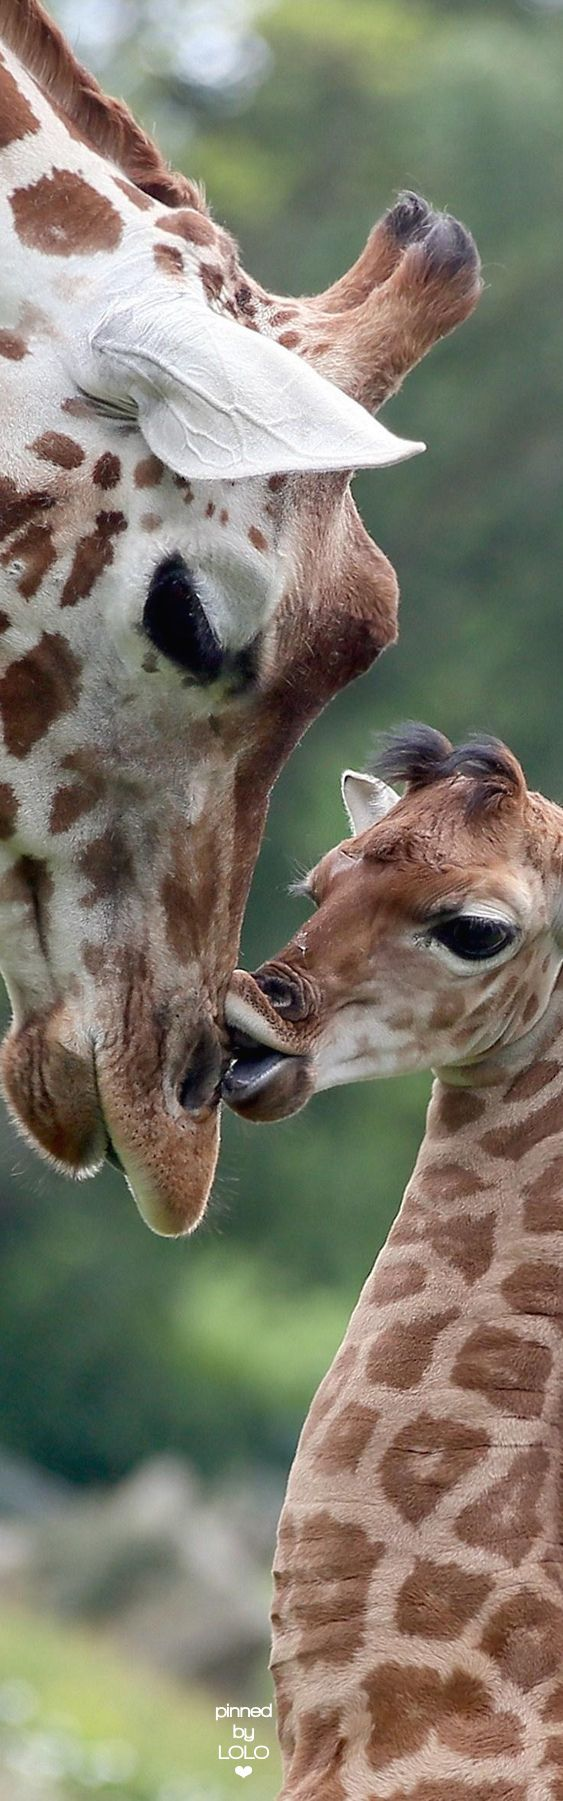 880 best giraffes images on pinterest | baby giraffes, wild animals